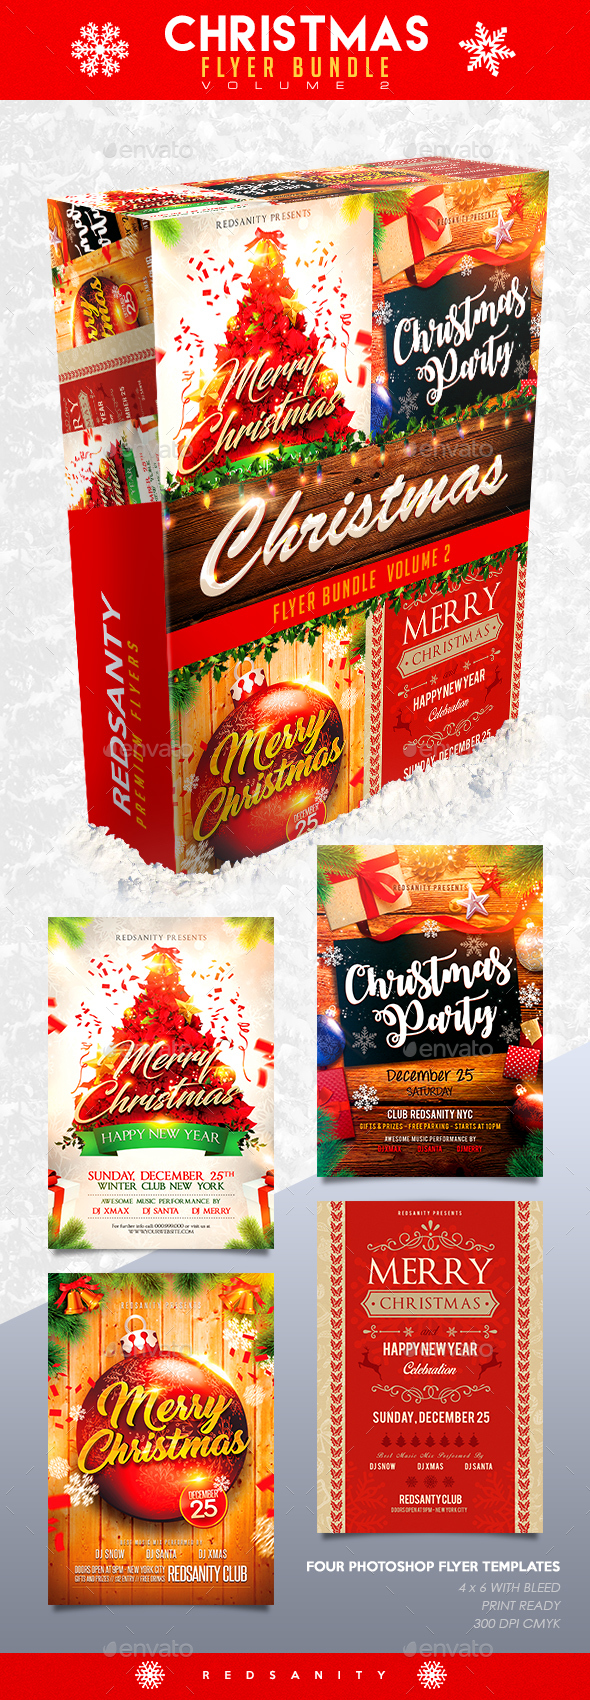 GraphicRiver Christmas Flyer Bundle Vol.2 20941420